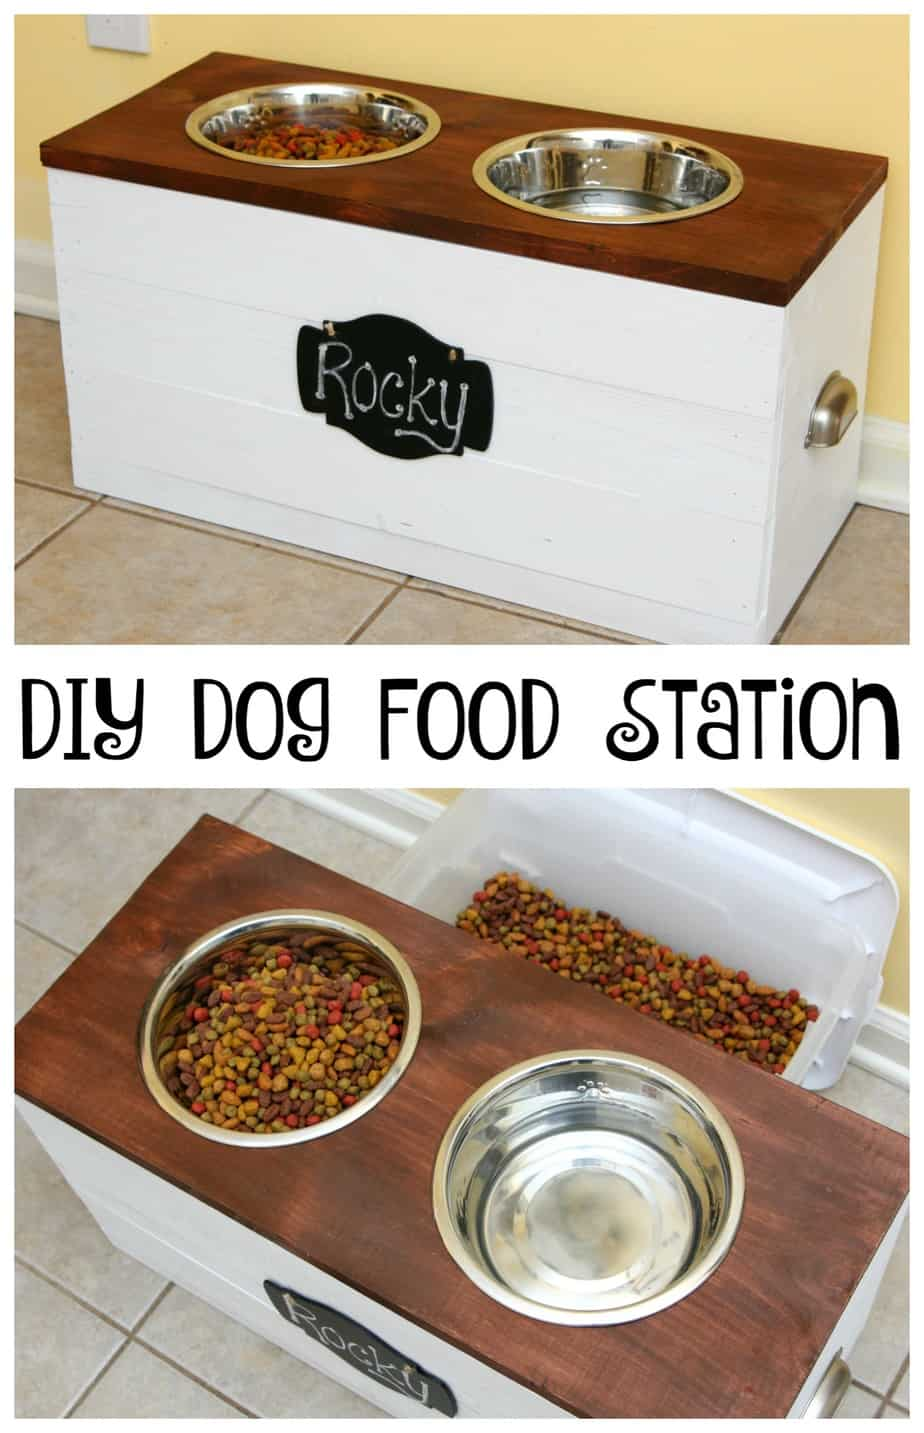 We are keeping our dog healthy with a DIY Dog Food Station and Purina ...